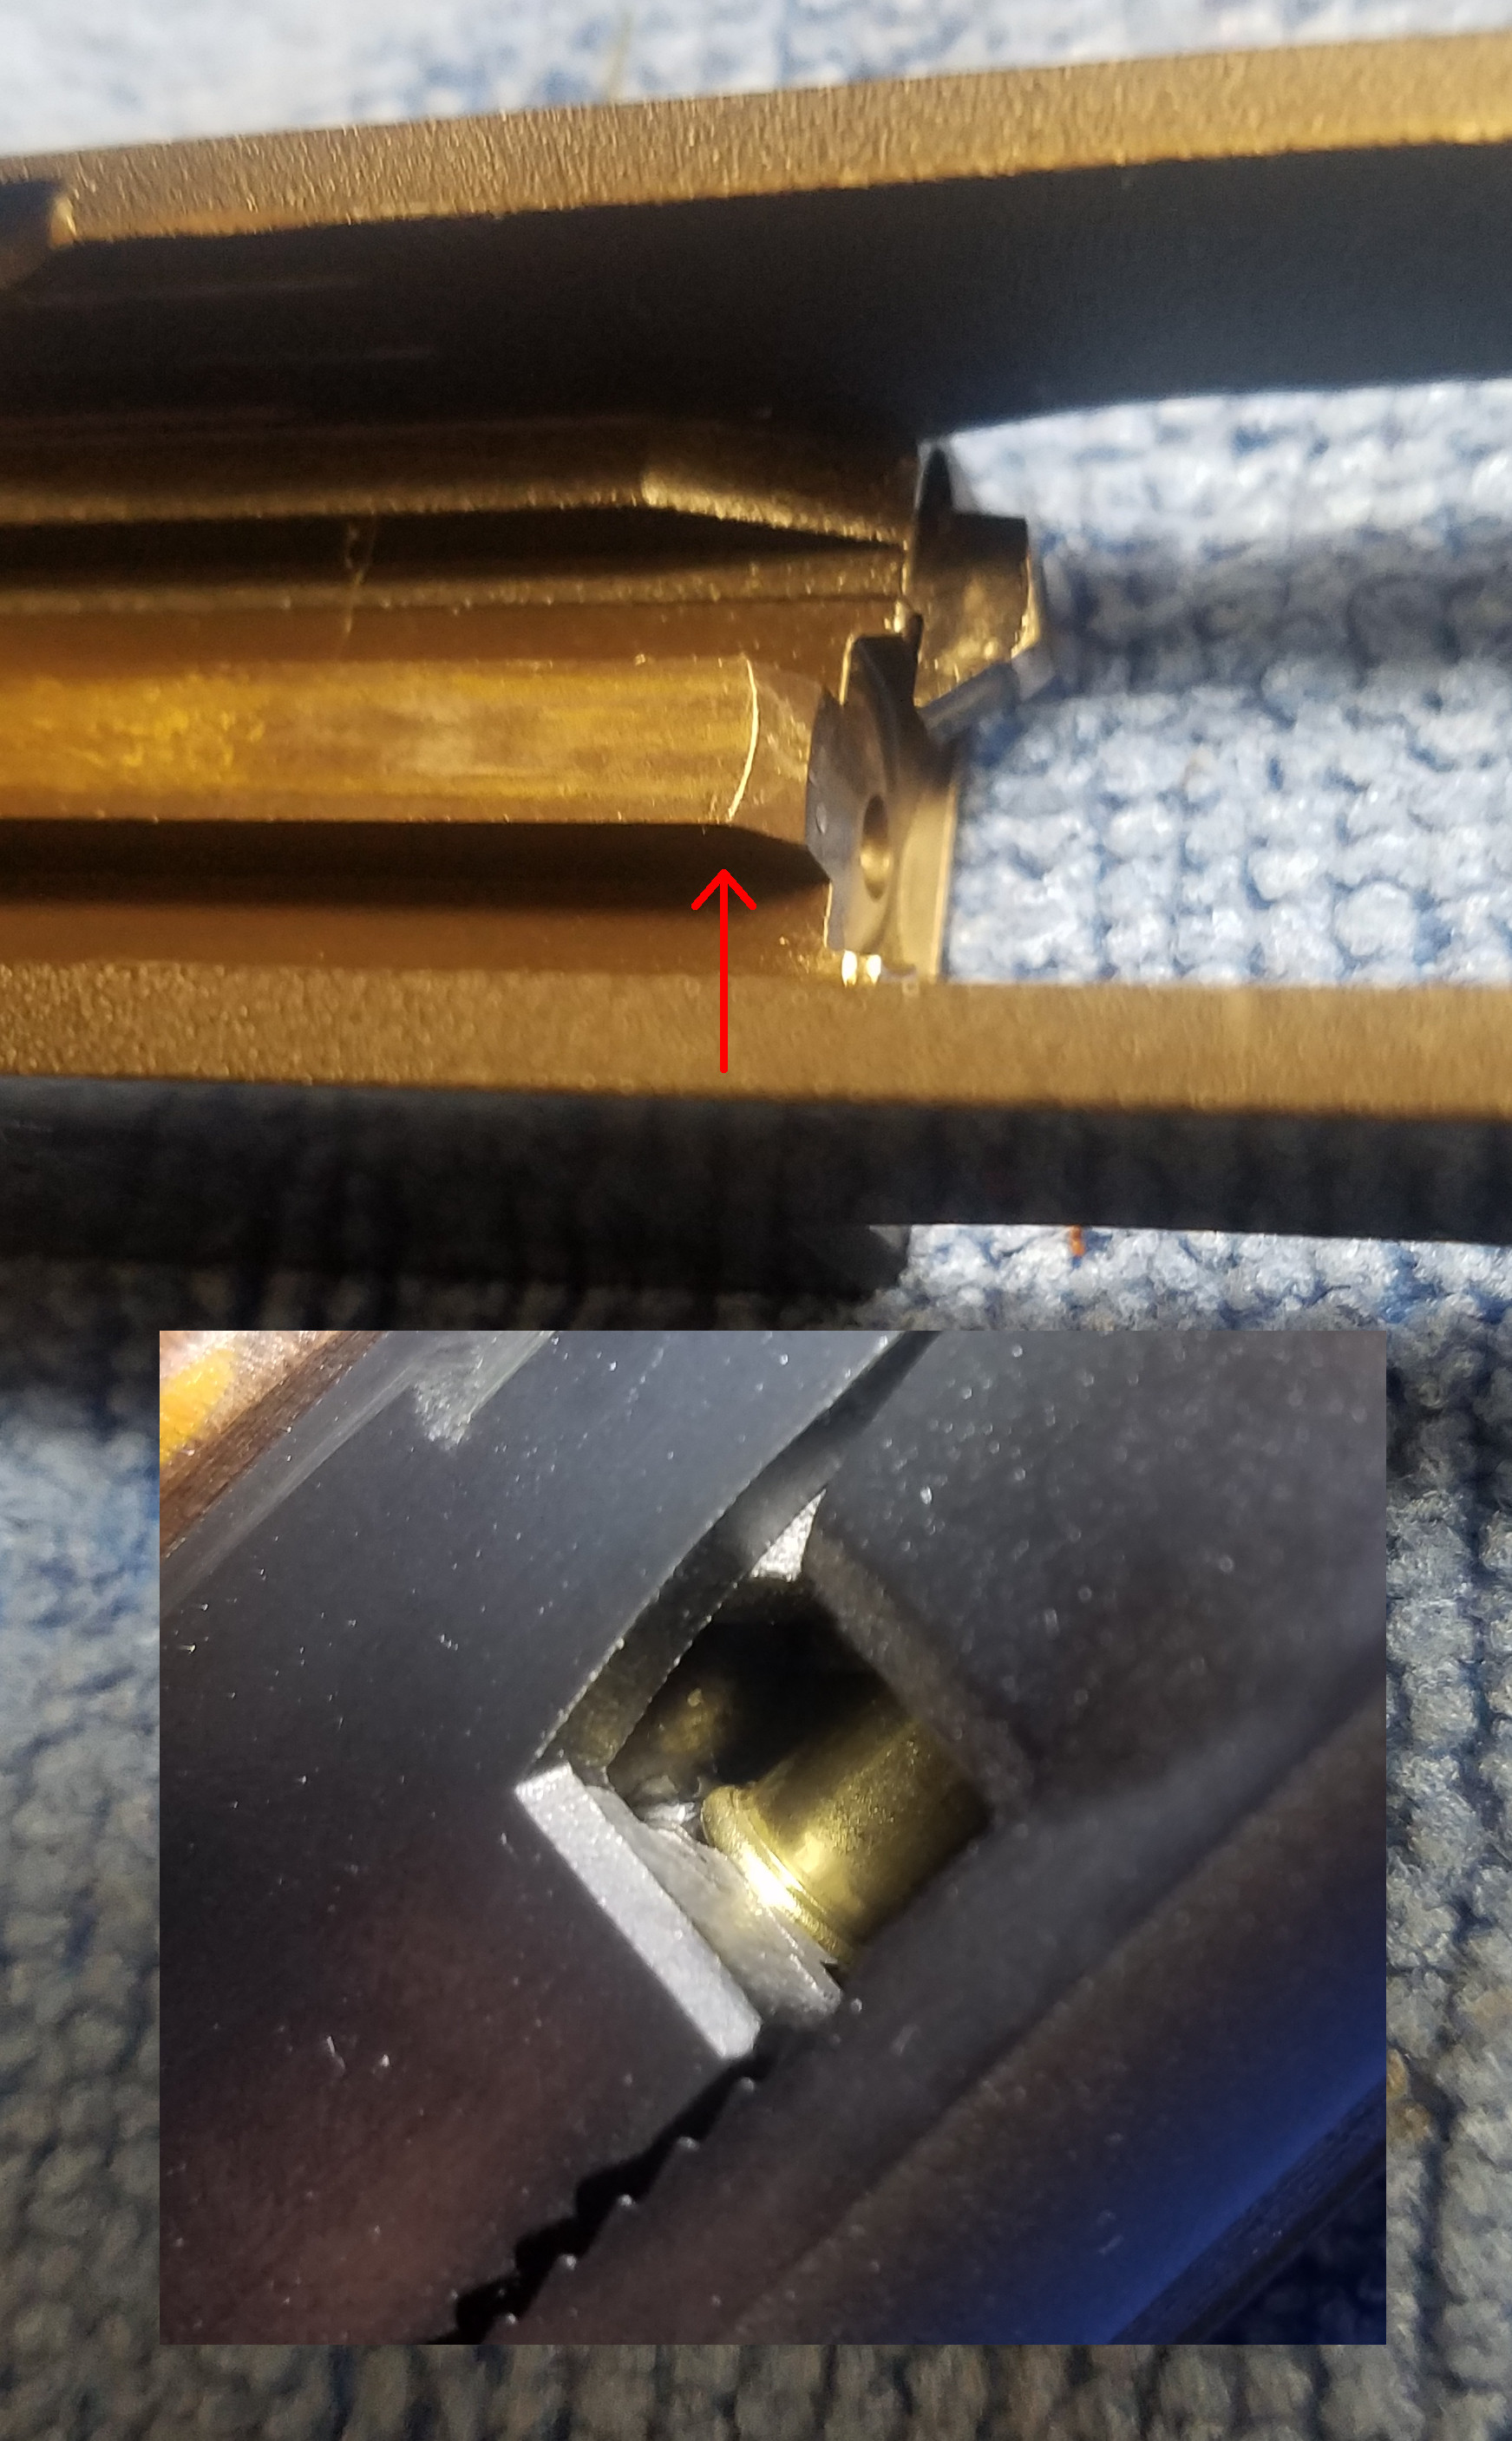 Smith & Wesson Model 41 - rounds damaged in magazine, prior to feeding Sw41slide